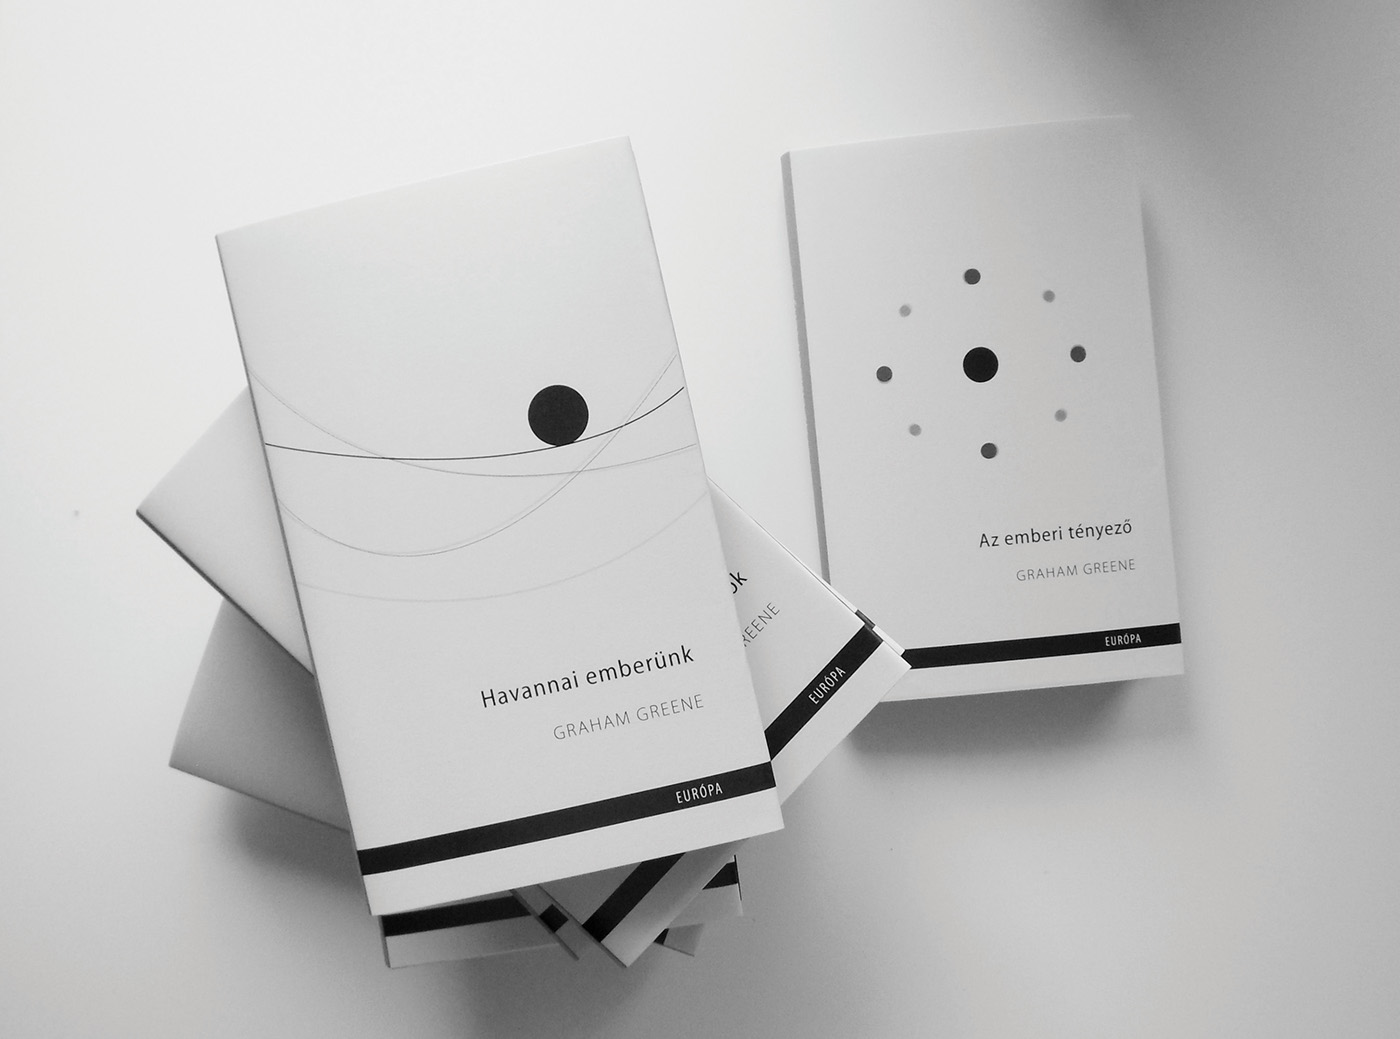 How To Make Minimalist Book Cover : Minimal book covers on behance